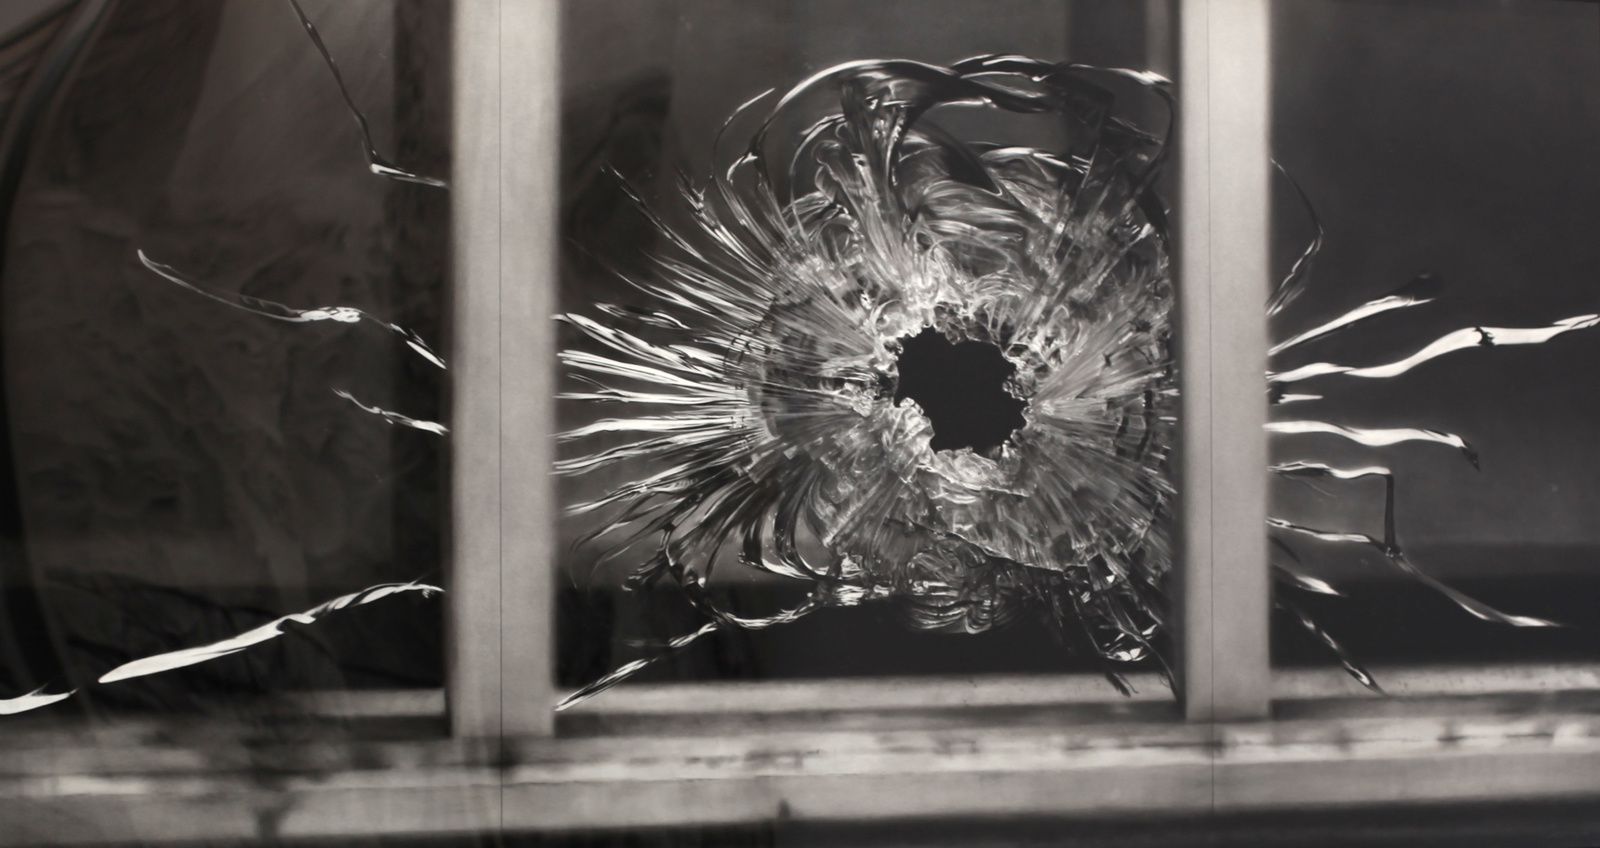 """Untitled (Bullet hole in window, janvary 7"", 2015 de Robert Longo - Courtesy Galerie Ropac © Photo Éric Simon"